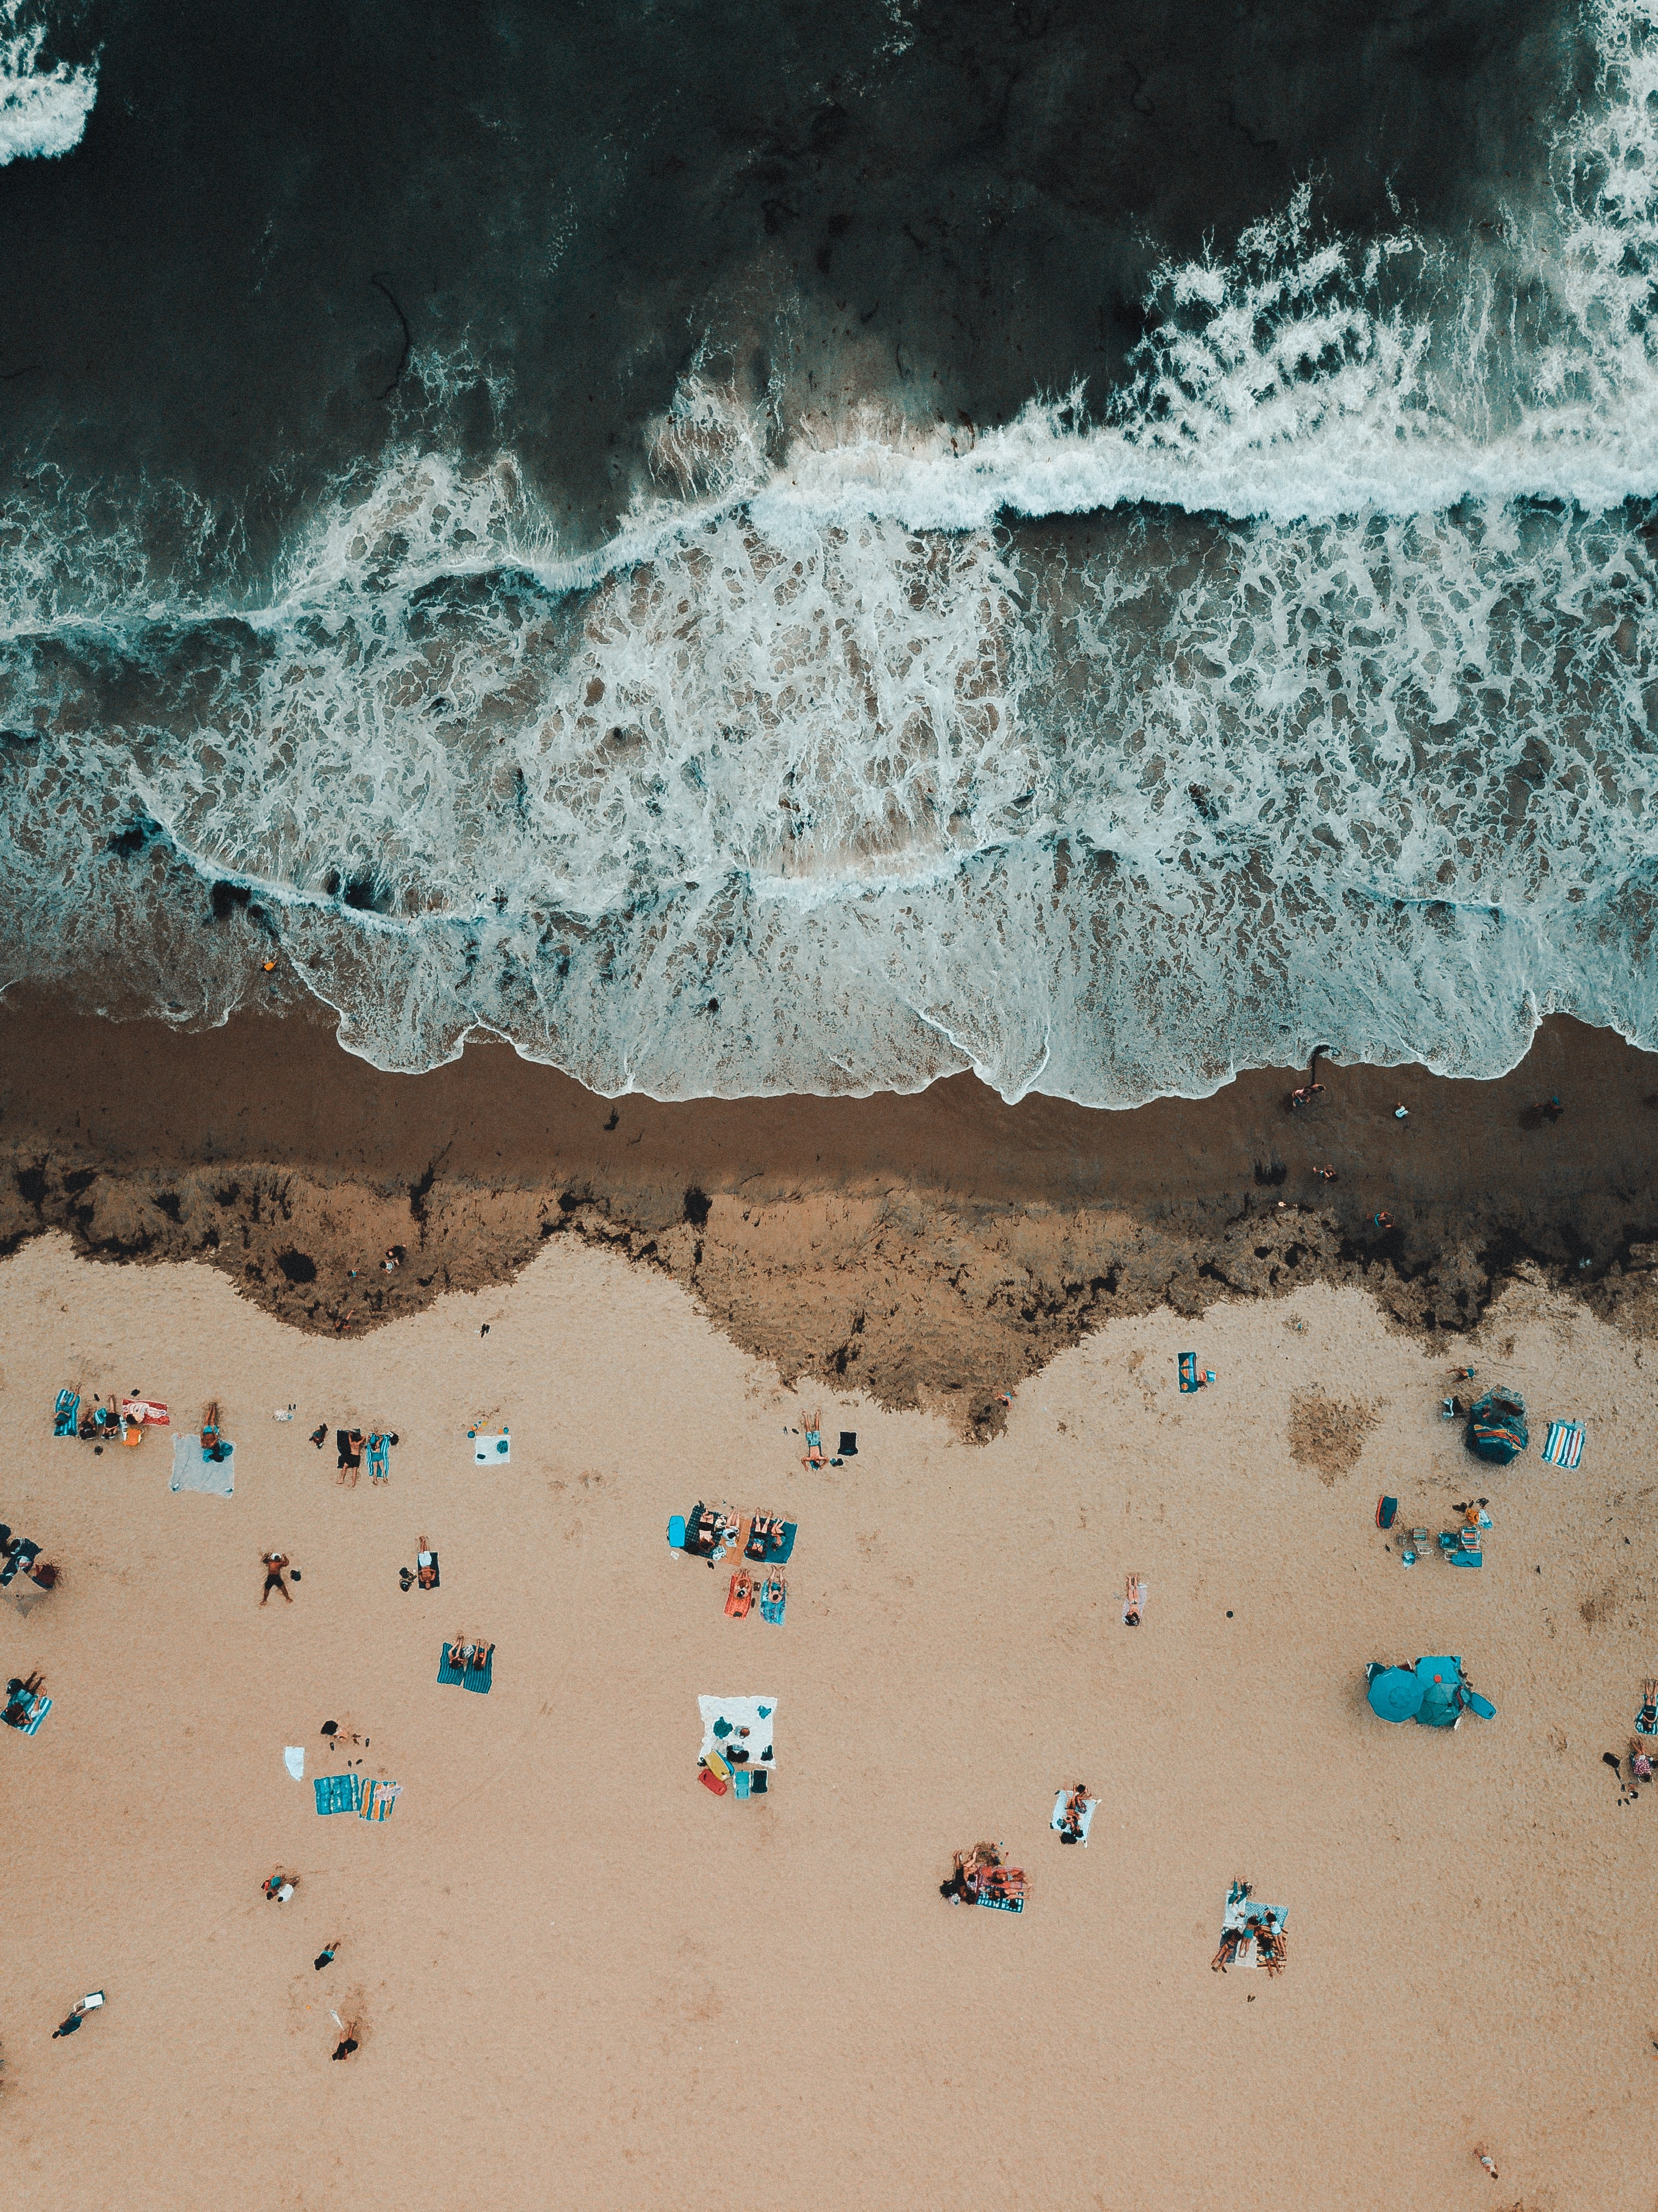 bird's eye view photography of people near seashore